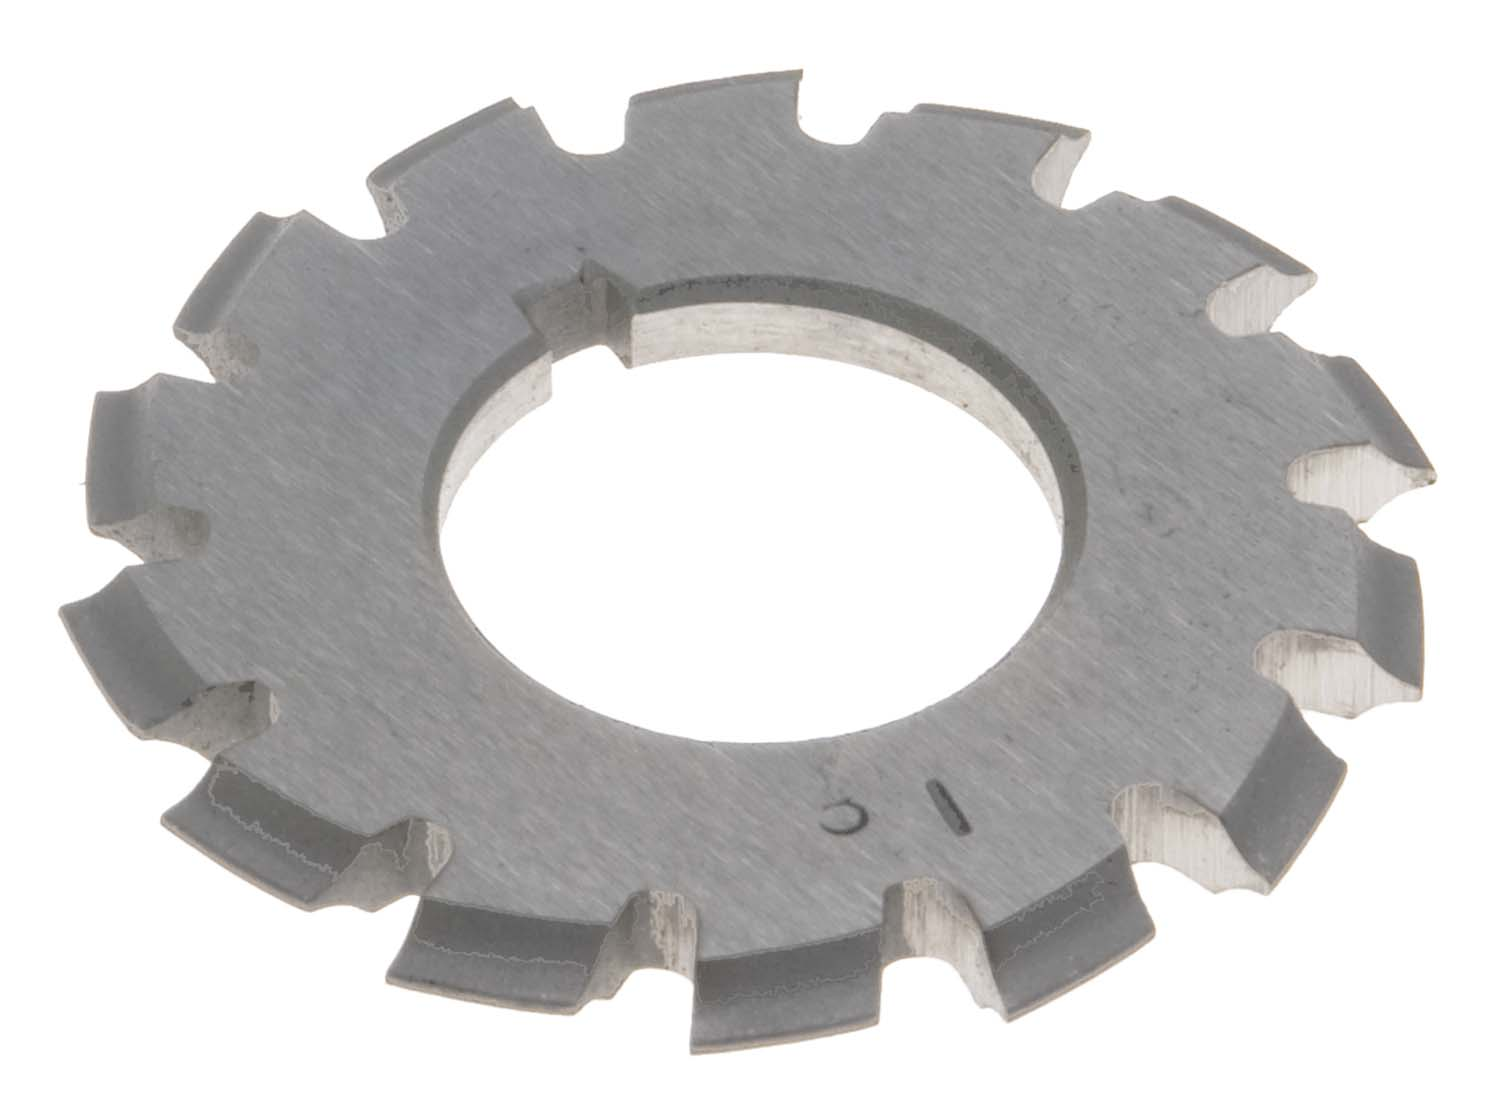 48 Diametral Pitch # 6  Involute Gear Cutter - 7/8 ID - 14-1/2 Degree Pressure Angle